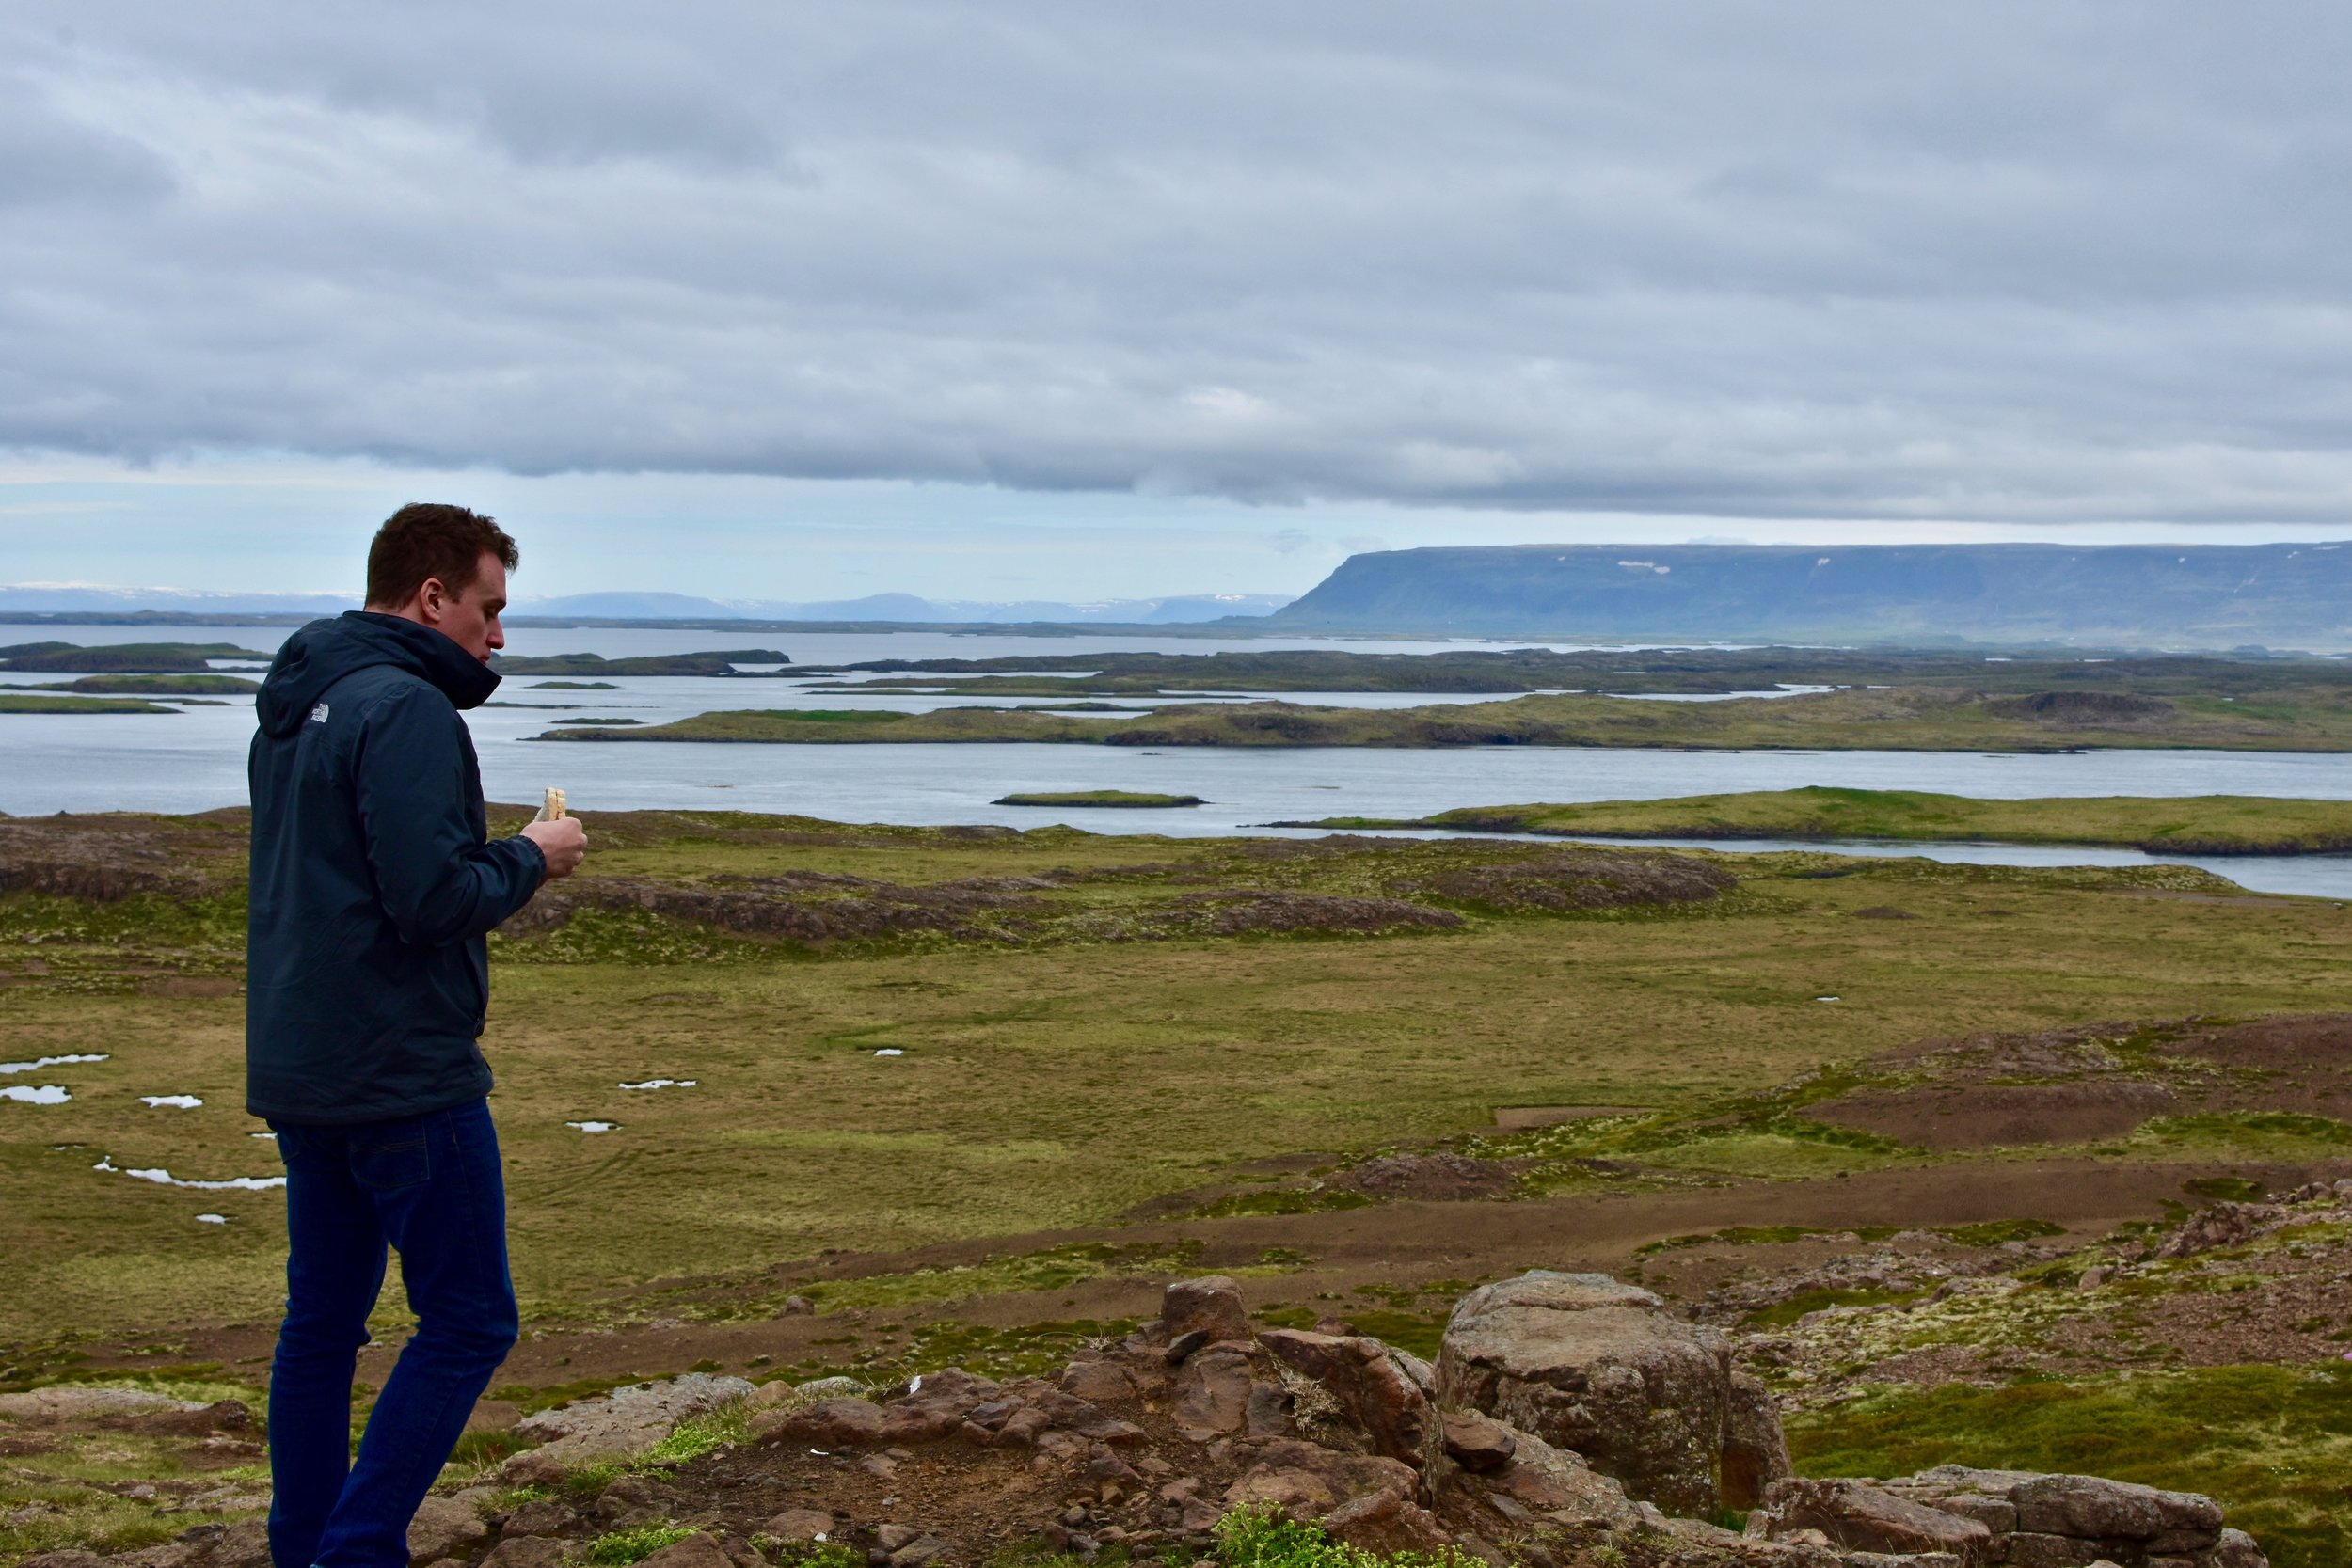 Eating a Sandwich on the way to Snæfellsnes Peninsula in North Iceland